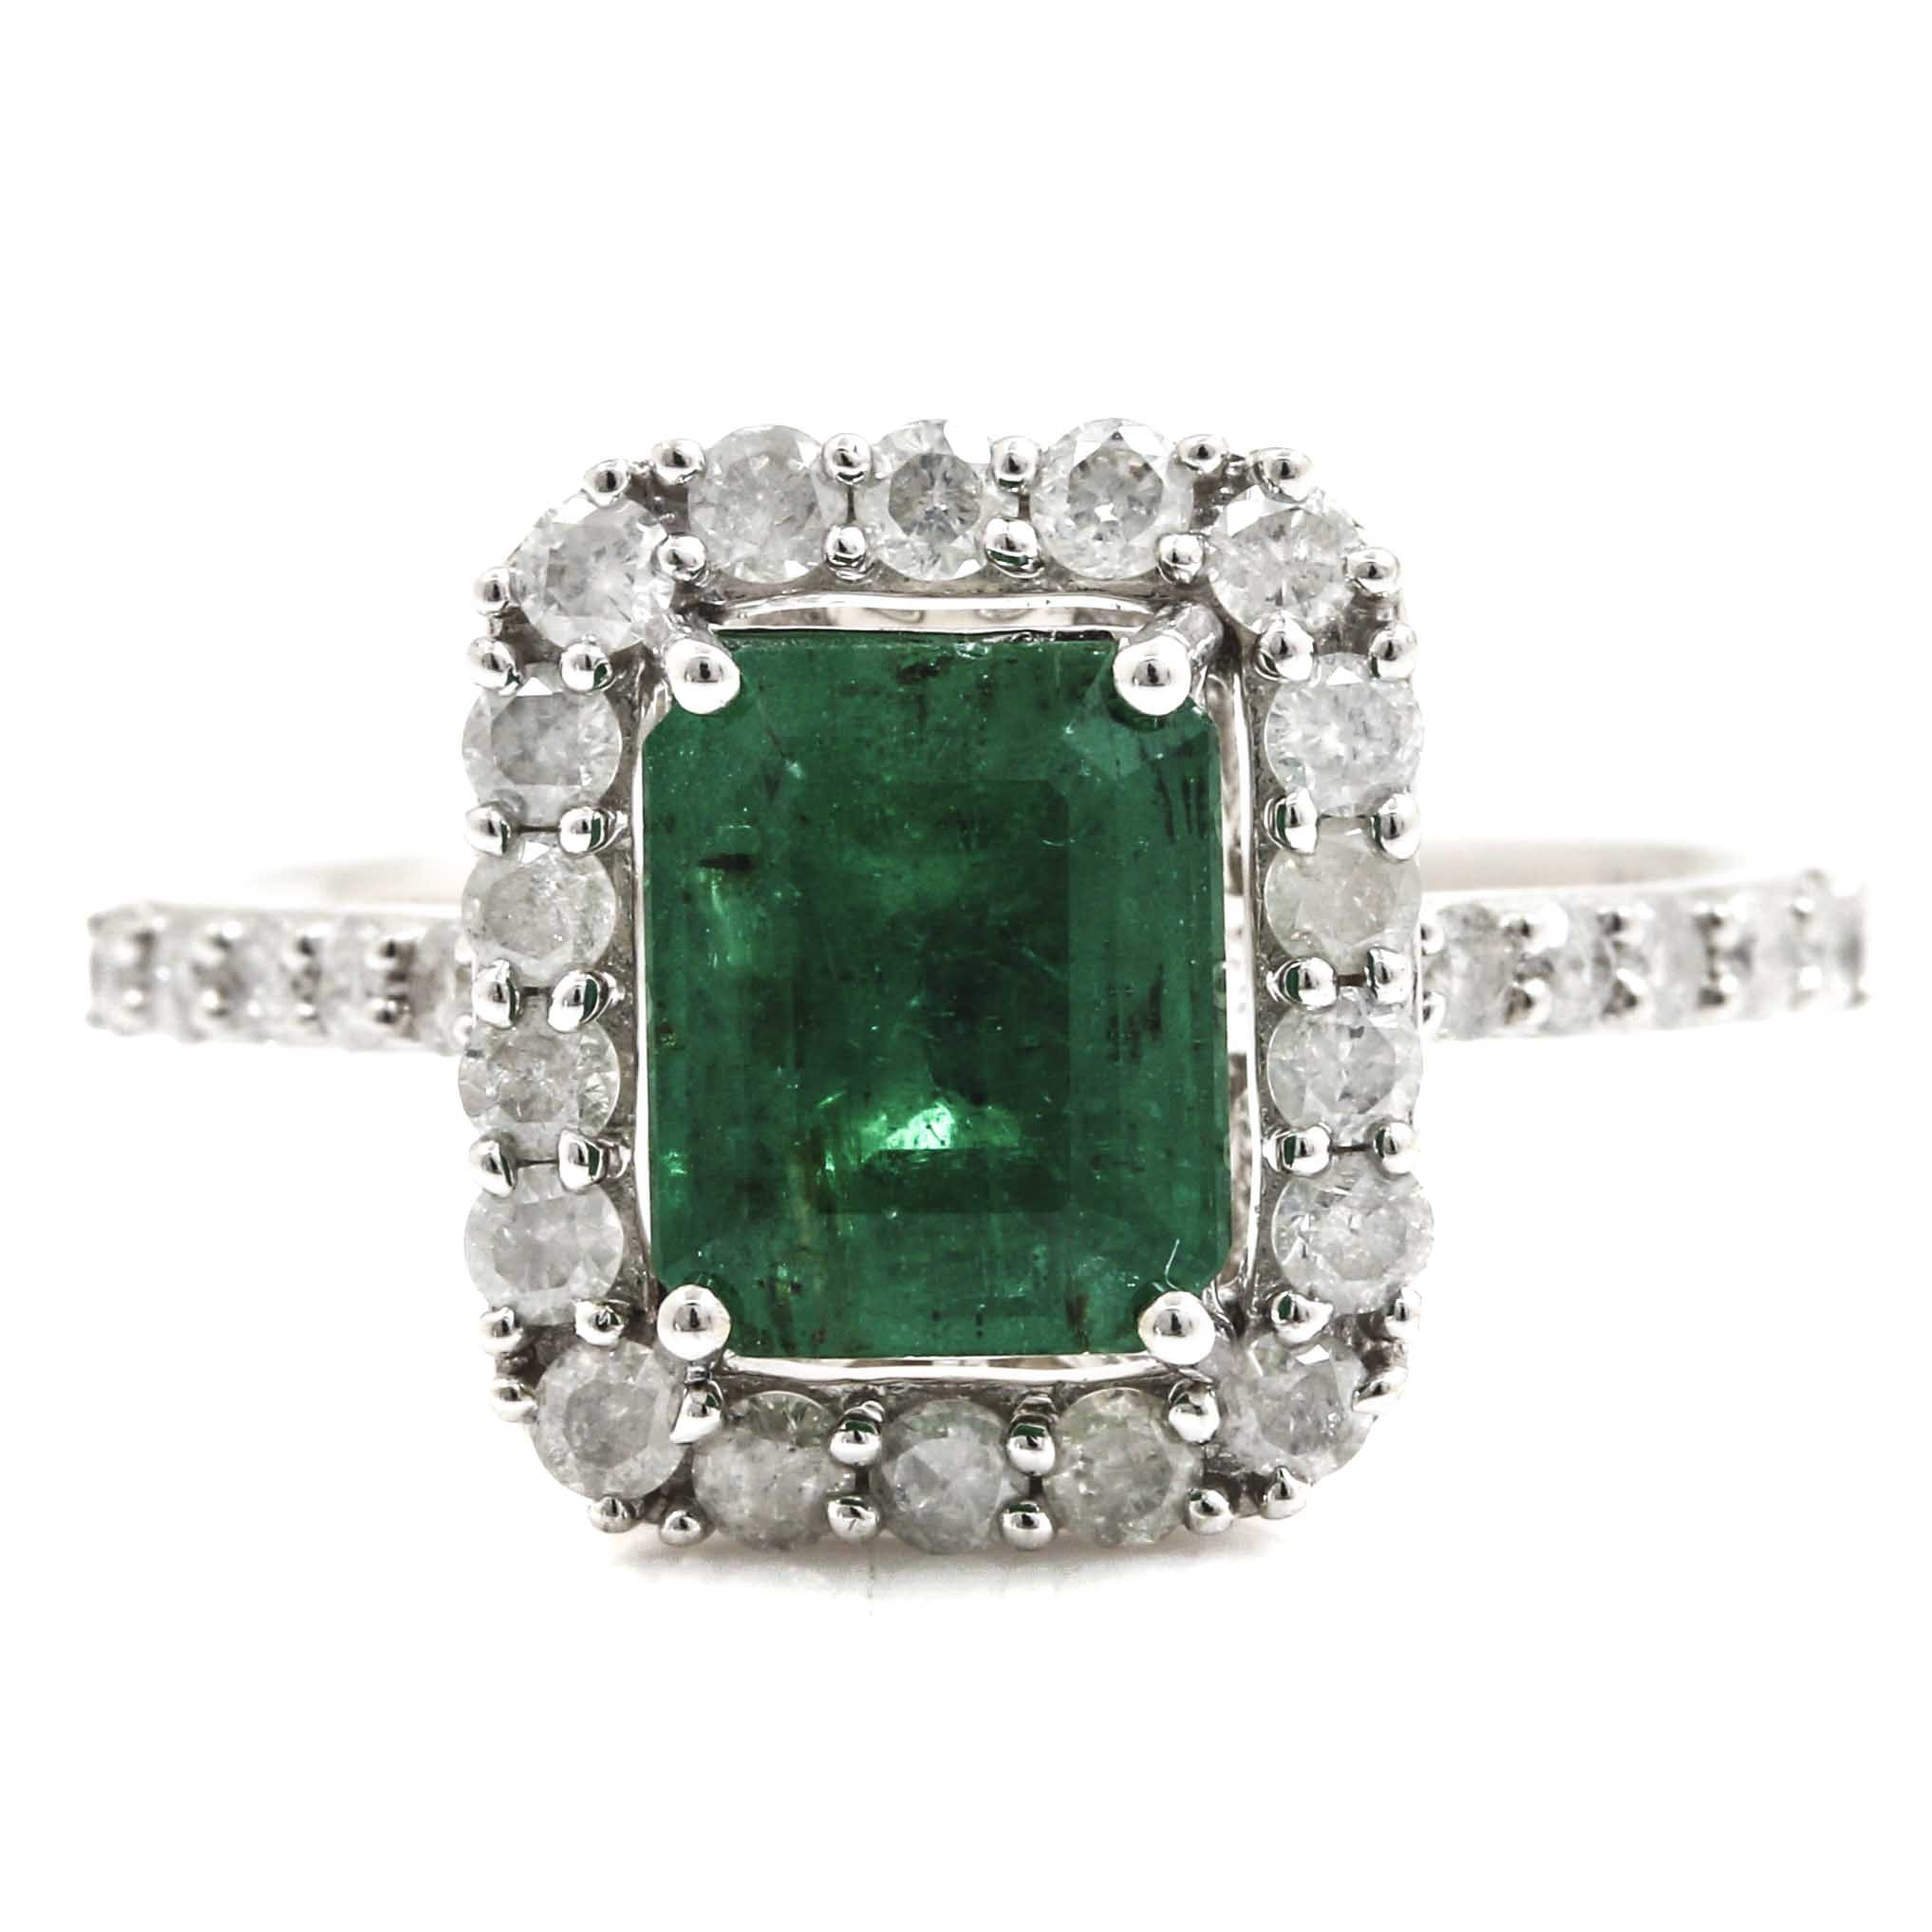 14K White Gold Diamond and 1.54 CT Emerald Ring